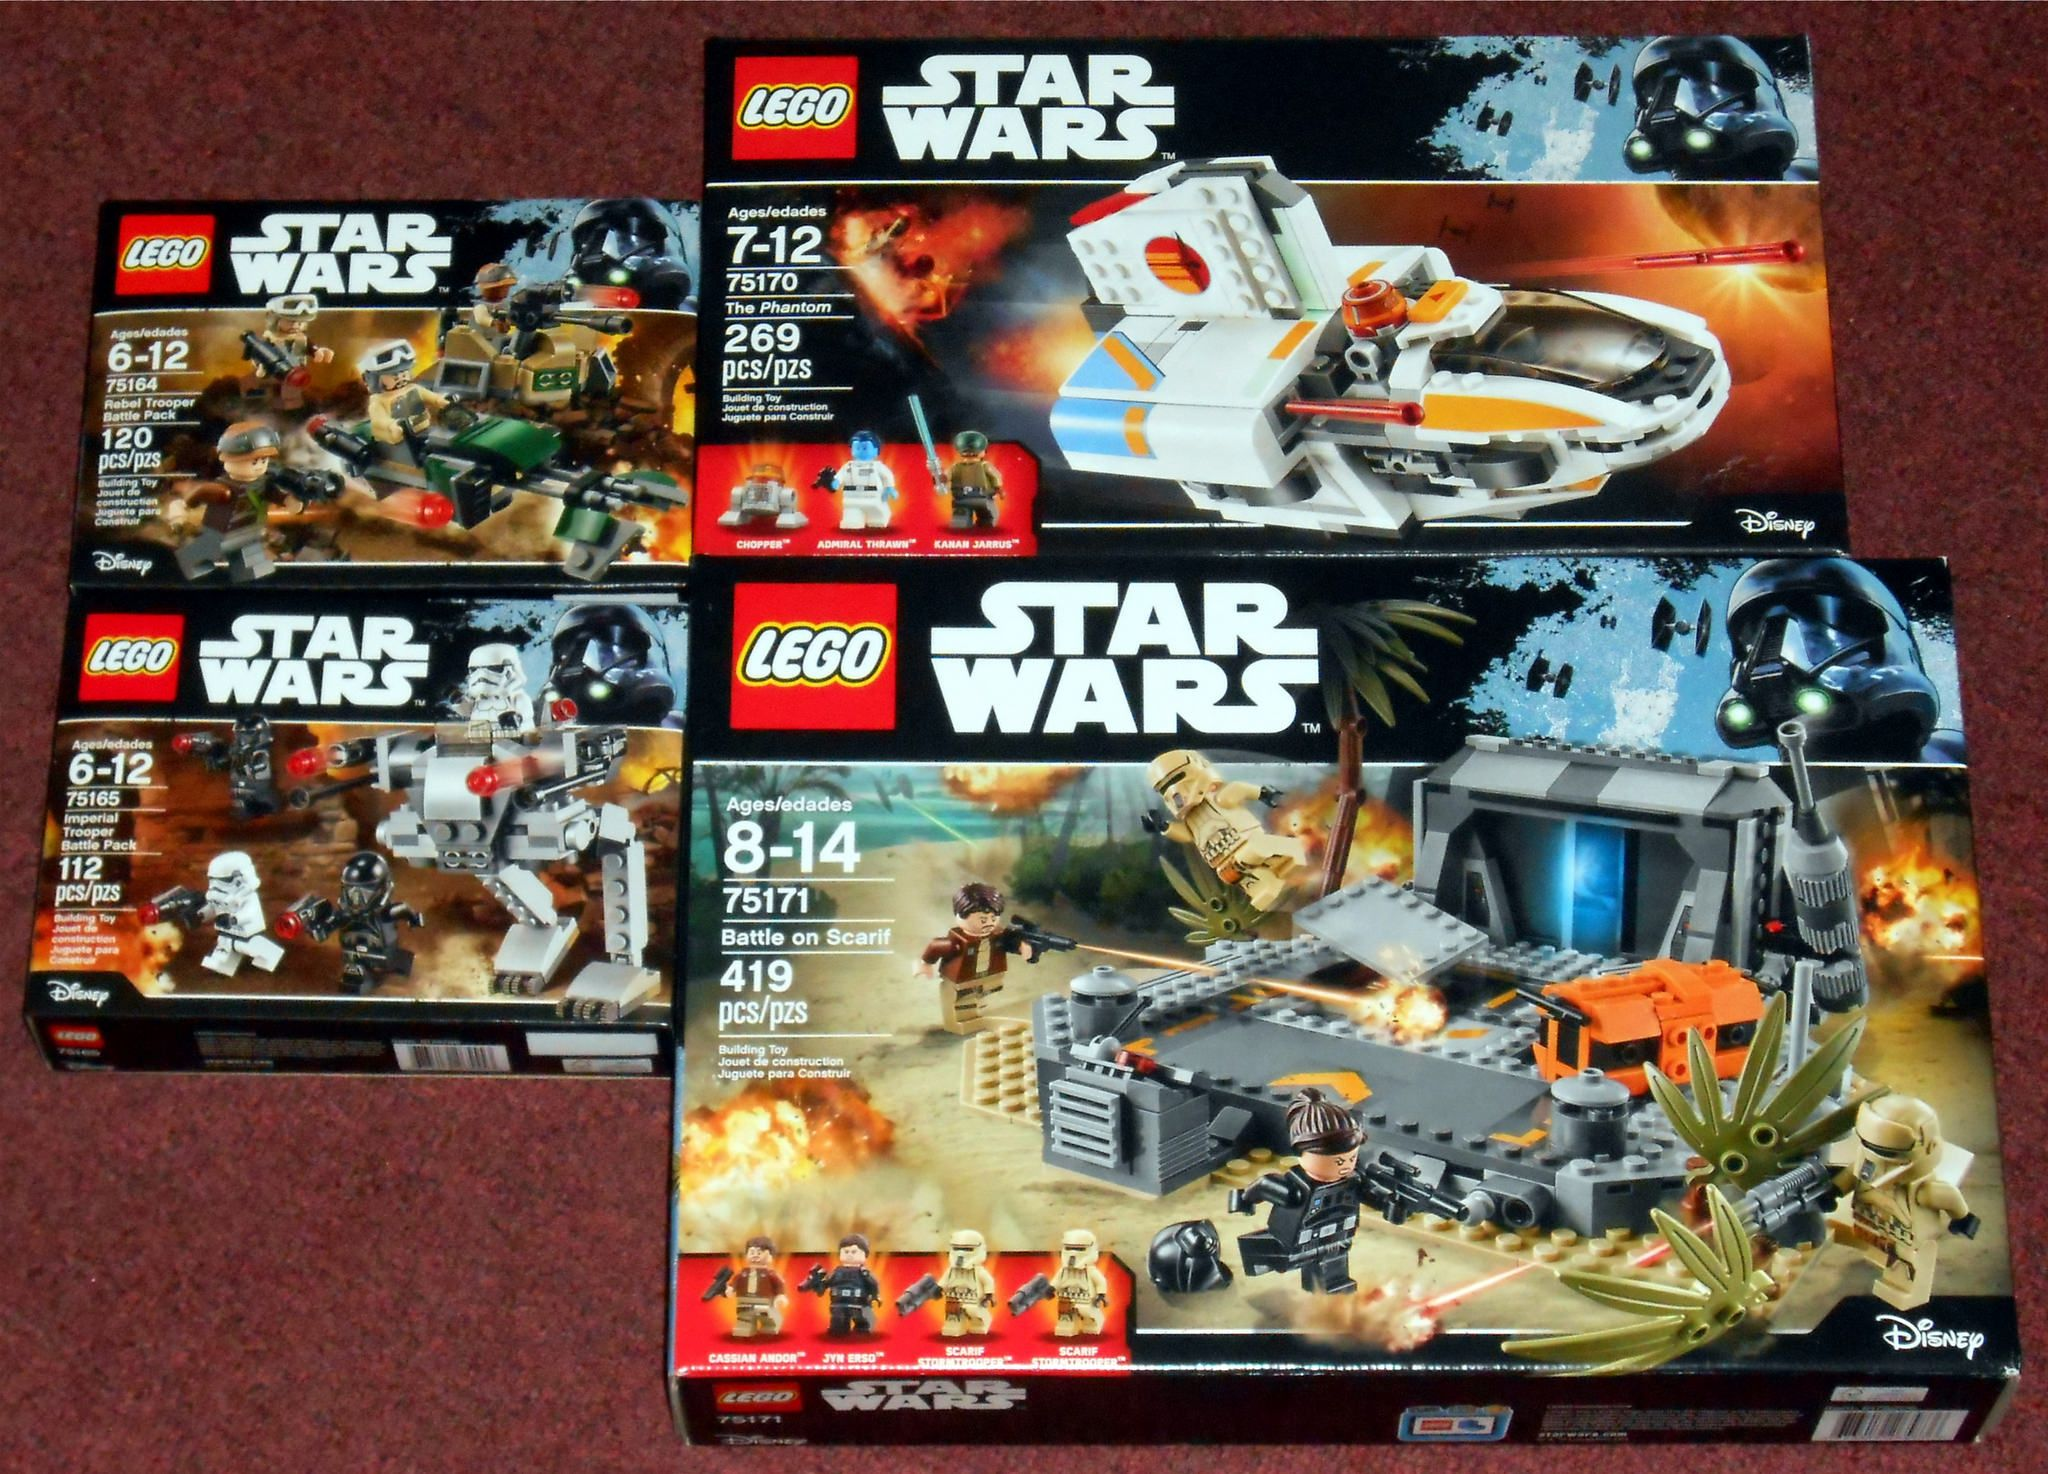 20% off new 2017 Lego Star Wars sets at Toys 'R Us! How ...